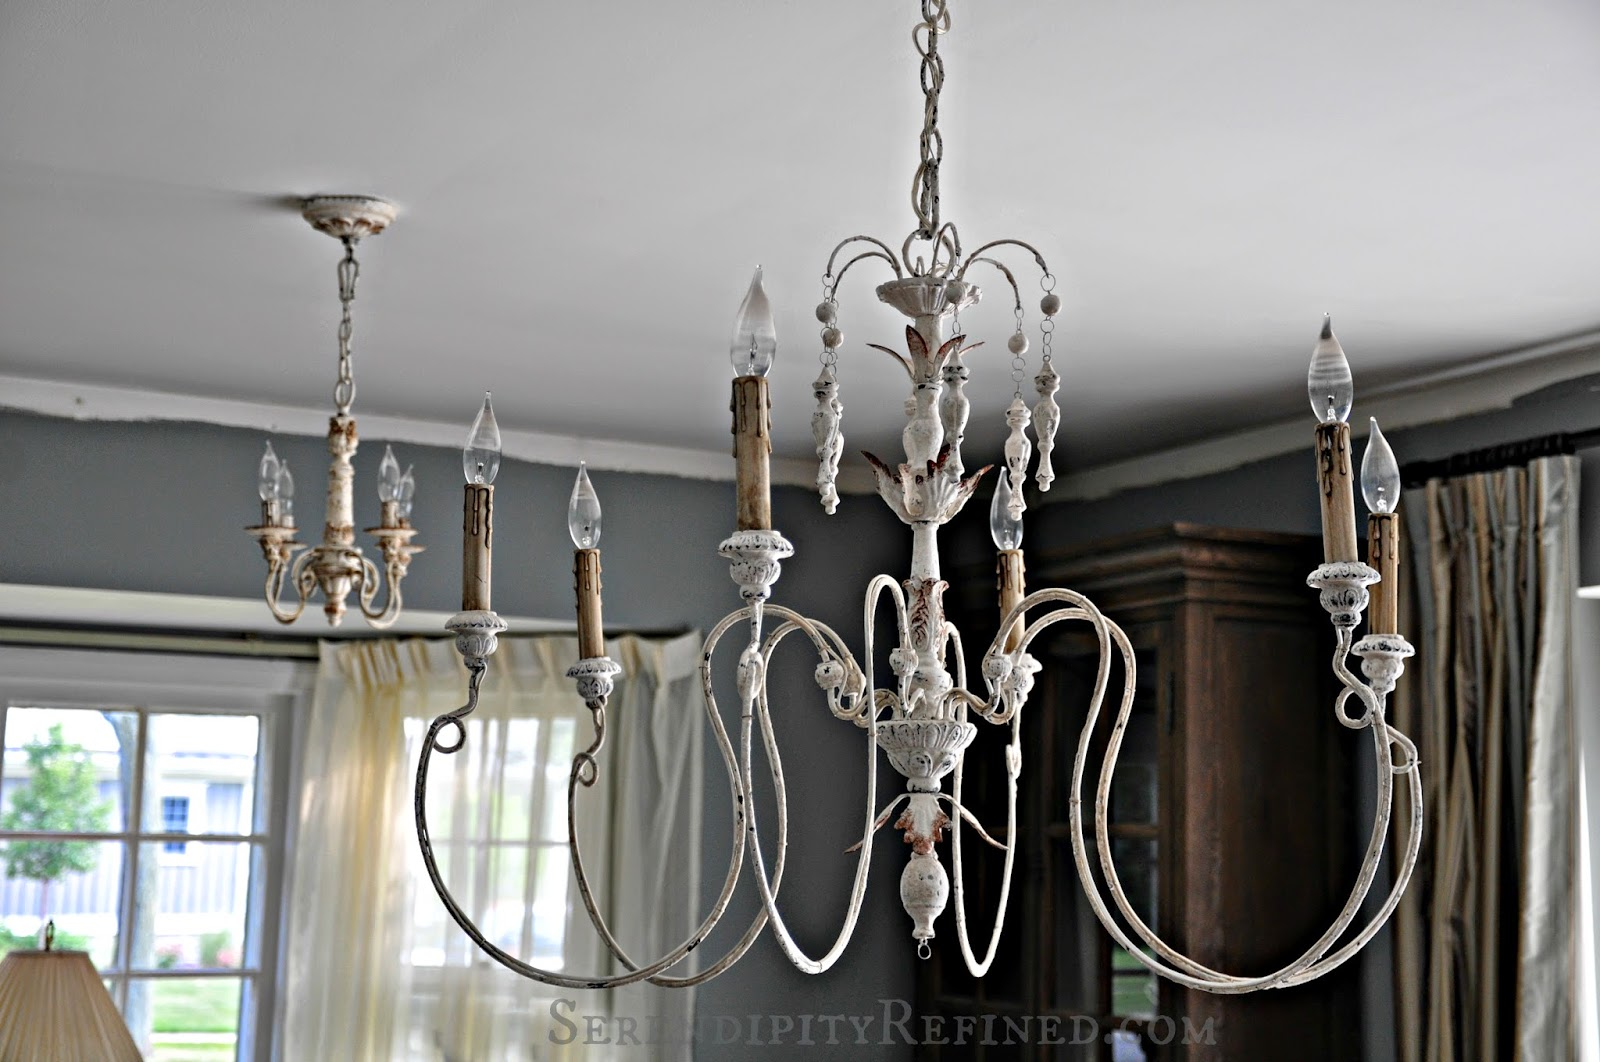 Serendipity Refined Blog French Country Light Fixtures For The Farmhouse Dining Room